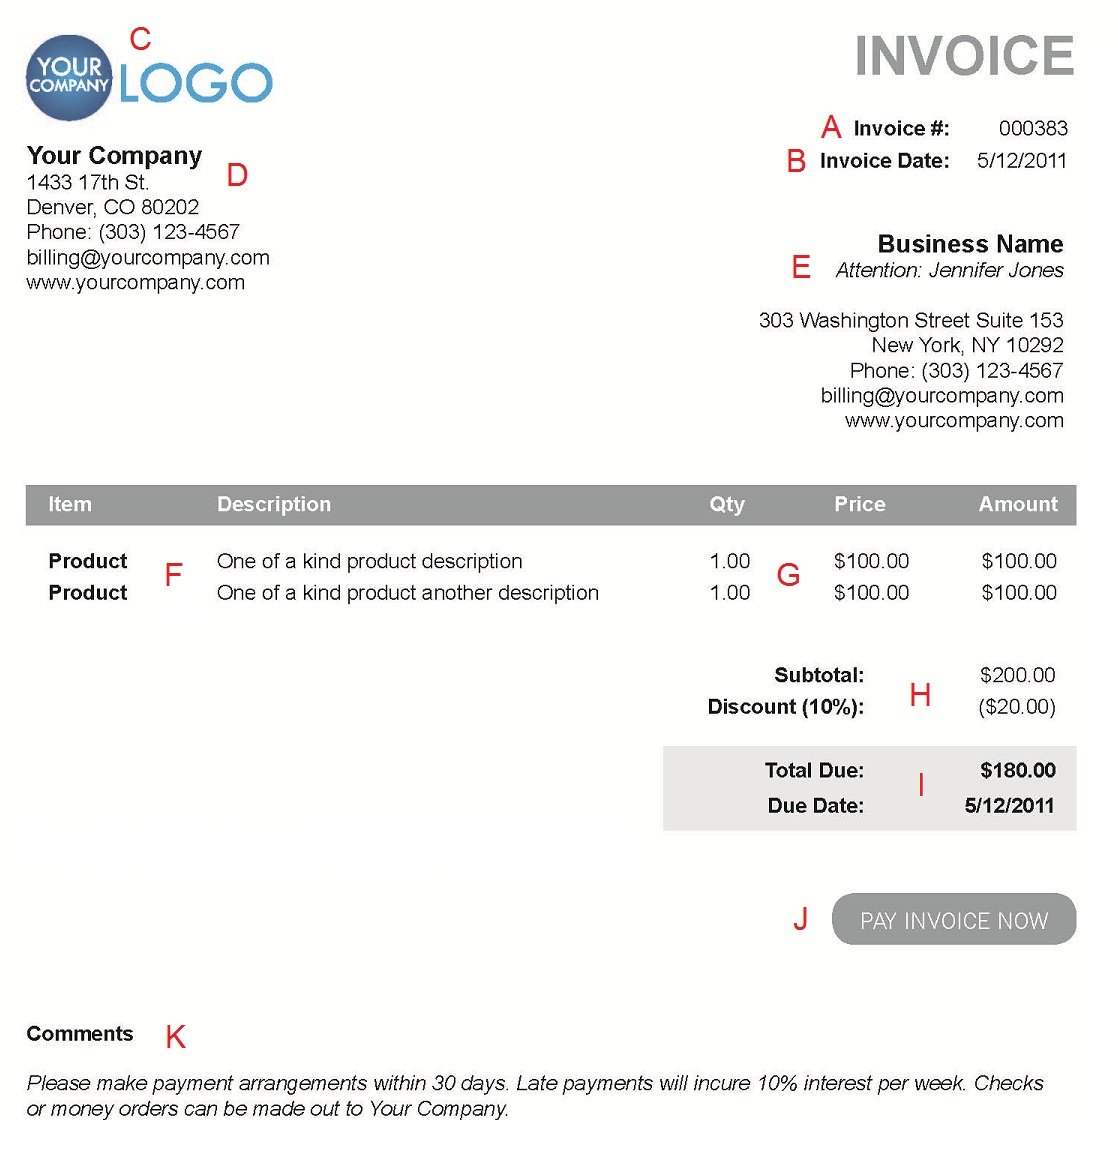 Bringjacobolivierhomeus  Unusual The  Different Sections Of An Electronic Payment Invoice With Interesting A  With Captivating Receipt Clipboard Also What Are Tax Receipts In Addition Best Buy Receipt Template And Scanning Receipts Into Quicken As Well As Vehicle Sales Receipt Template Free Additionally Uscis Receipt Number Lookup From Paysimplecom With Bringjacobolivierhomeus  Interesting The  Different Sections Of An Electronic Payment Invoice With Captivating A  And Unusual Receipt Clipboard Also What Are Tax Receipts In Addition Best Buy Receipt Template From Paysimplecom